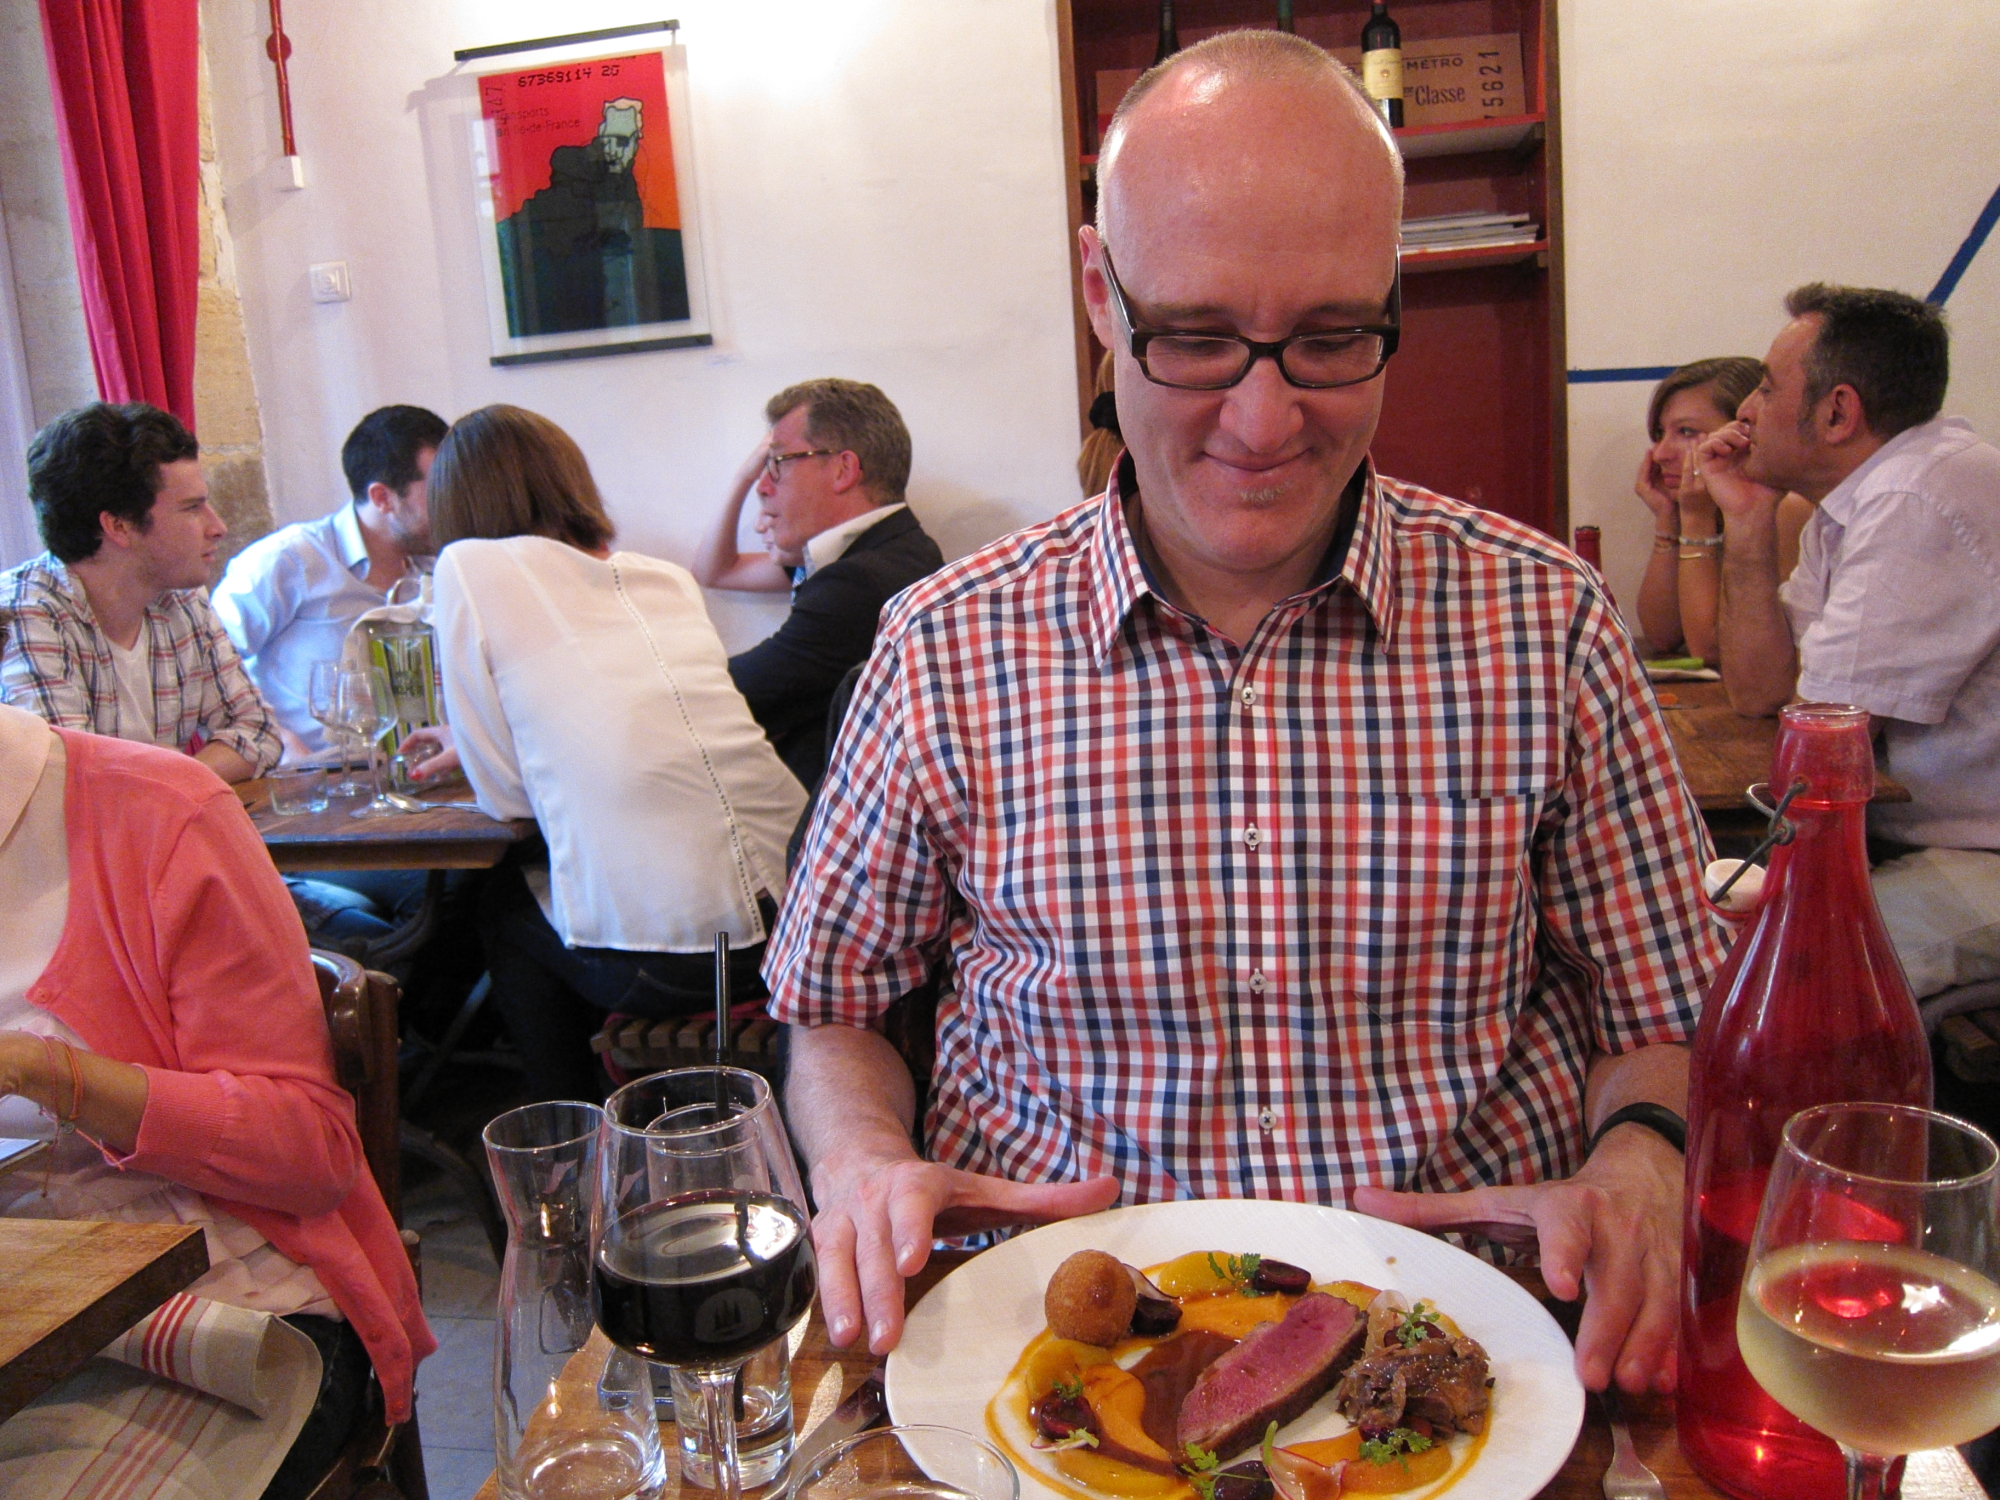 Jaime with his main course at Metropolitan, amidst an agreeable group of diners.